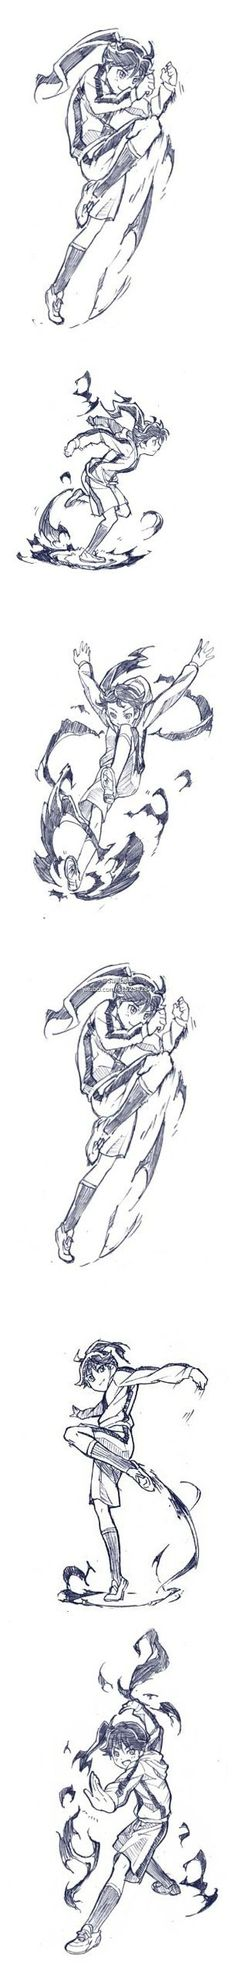 New drawing poses action magic ideas Drawing Poses, Manga Drawing, Figure Drawing, Drawing Hair, Animation Reference, Art Reference Poses, Drawing Reference, Anatomy Reference, Character Poses